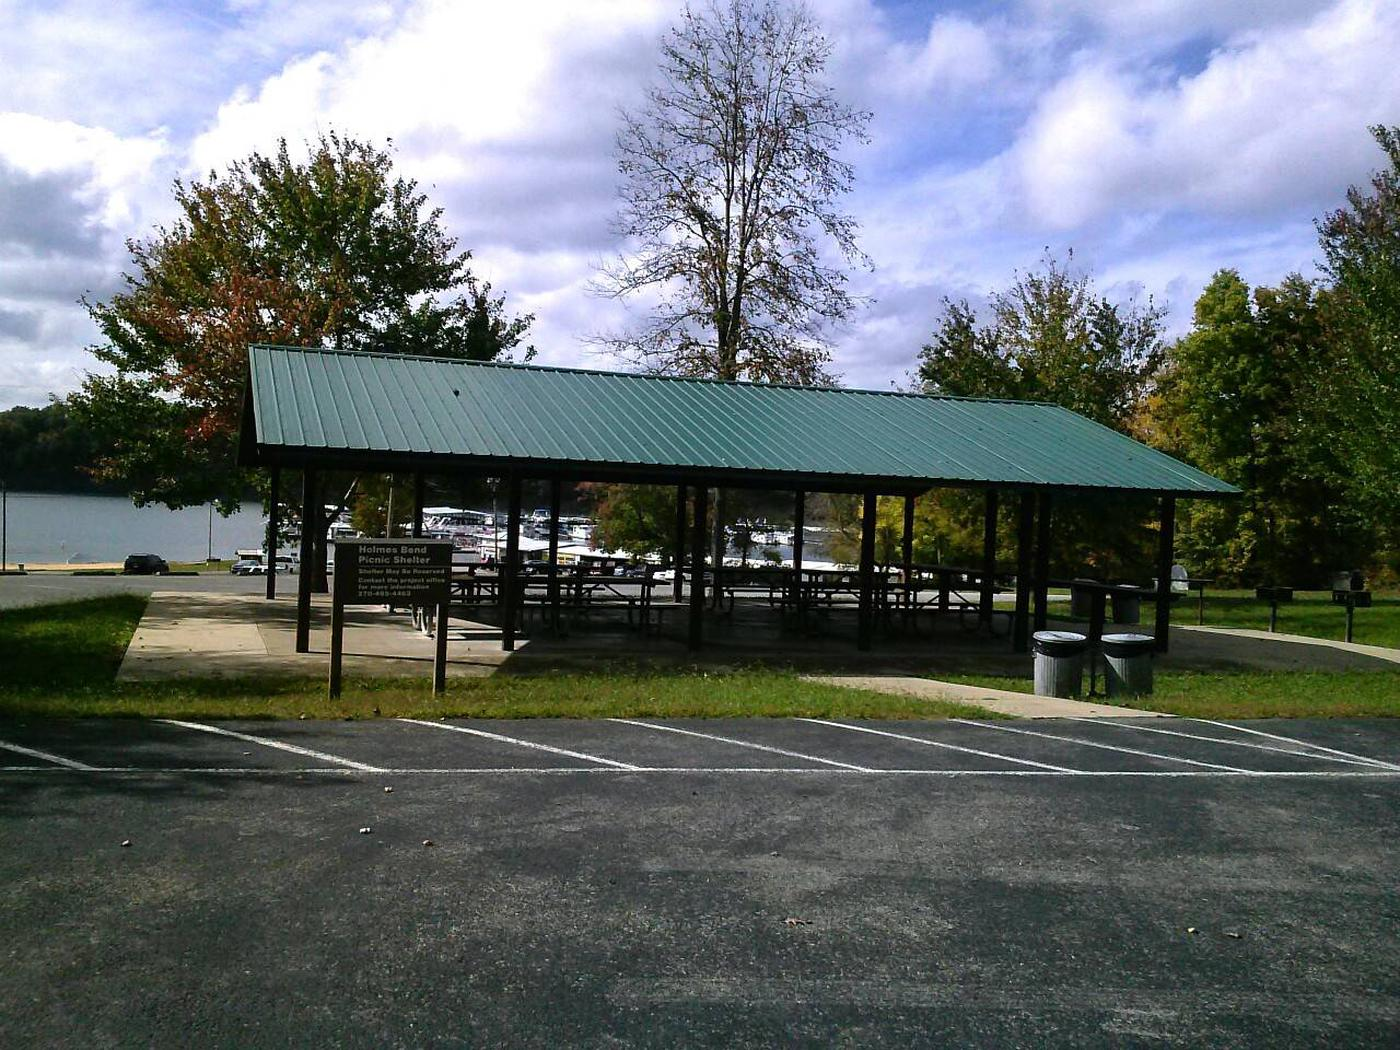 Holmes Bend Picnic ShelterPicnic shelter located near the beach and marina, about 1 mile from the campground